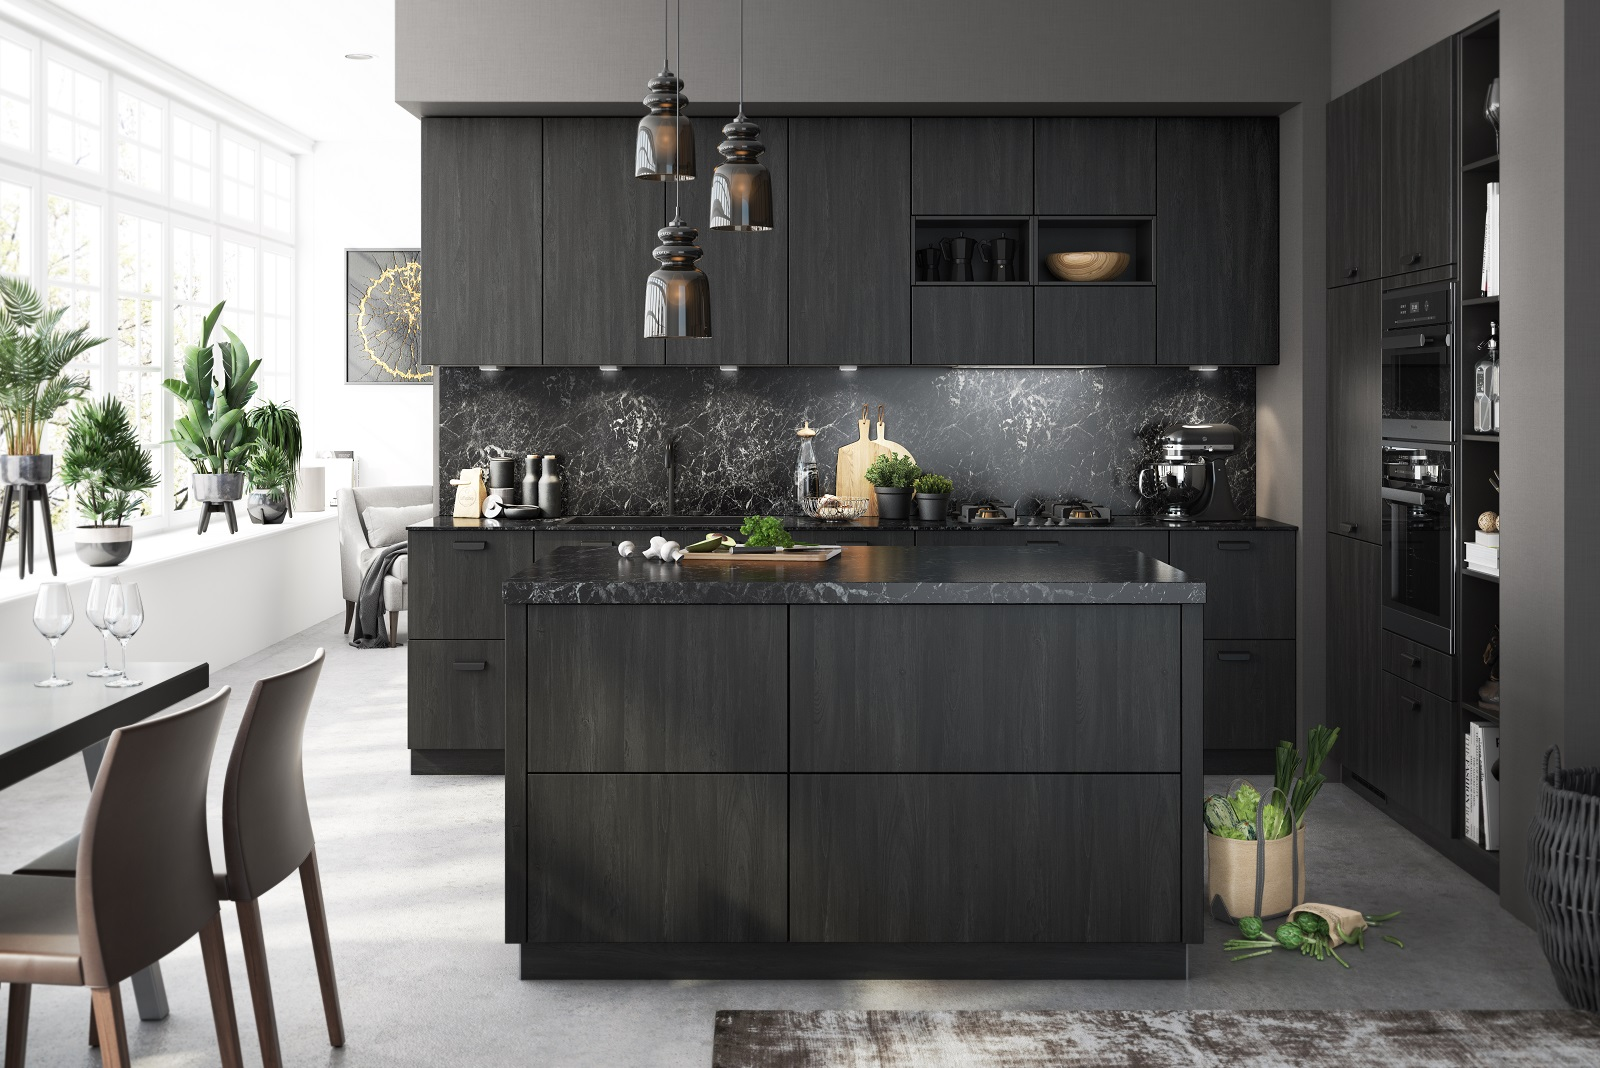 Modern Kitchen Cabinets From Germany At Affordable Price